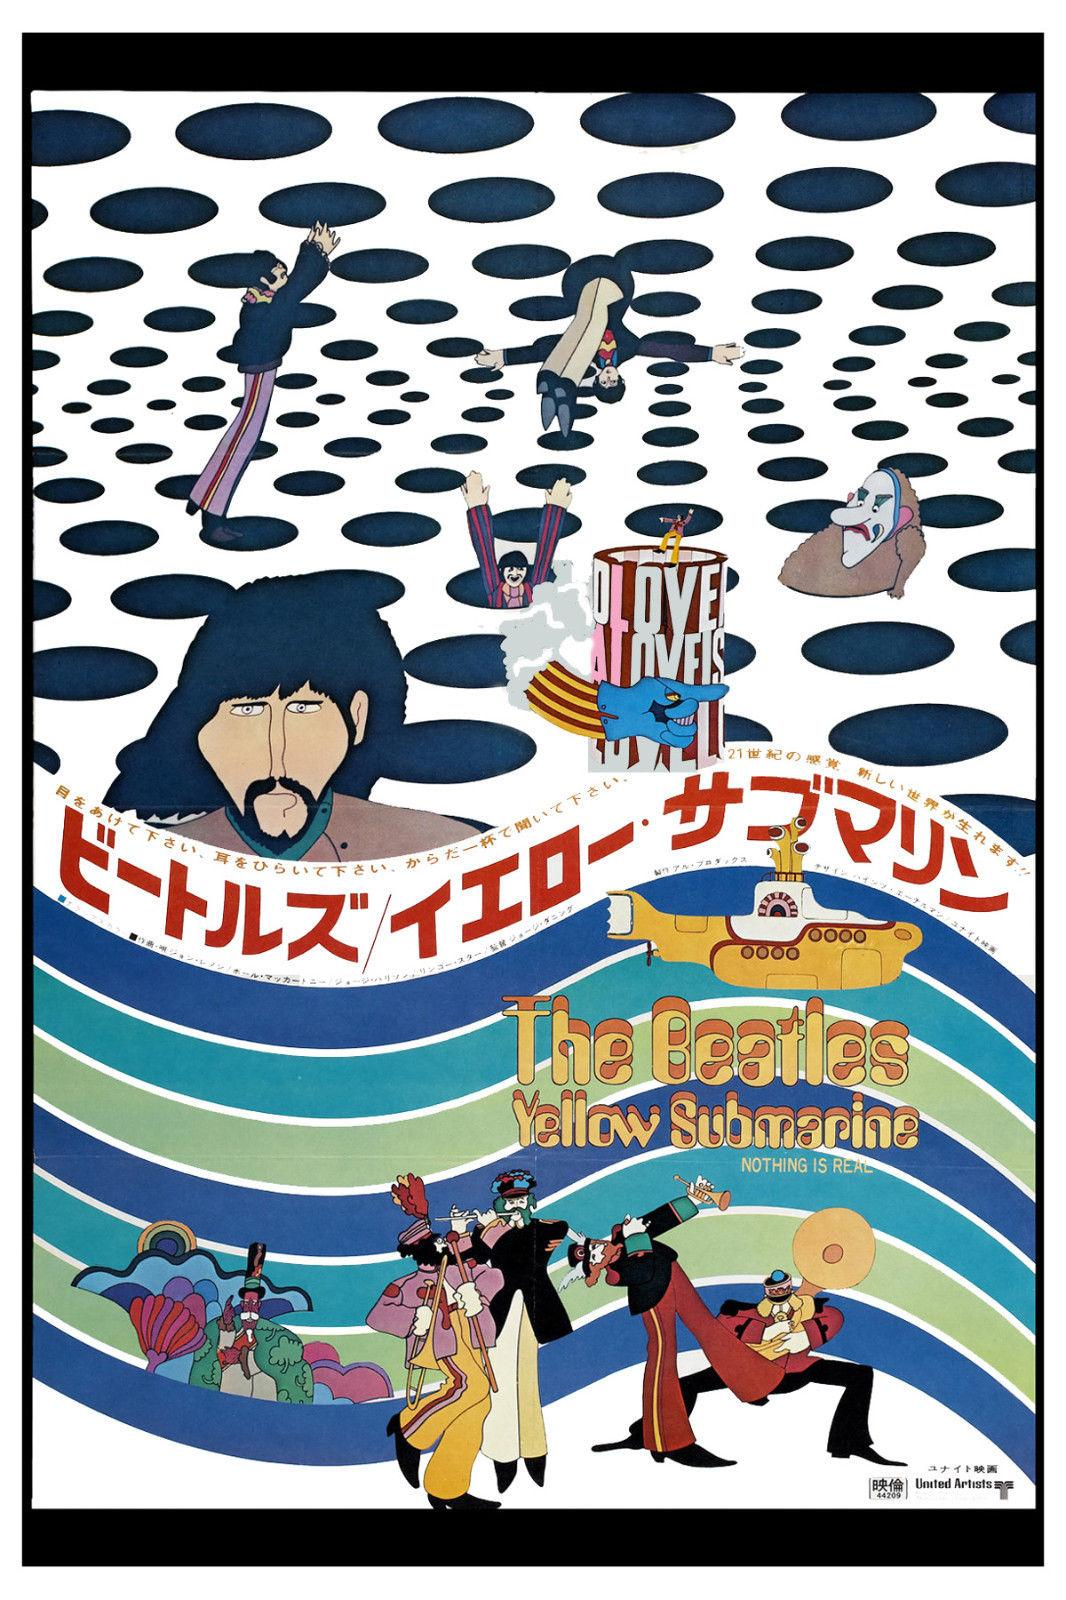 1960 s The Beatles * Yellow Submarine * Japan Movie Art Silk Print Poster  24x36inch(60x90cm) 015